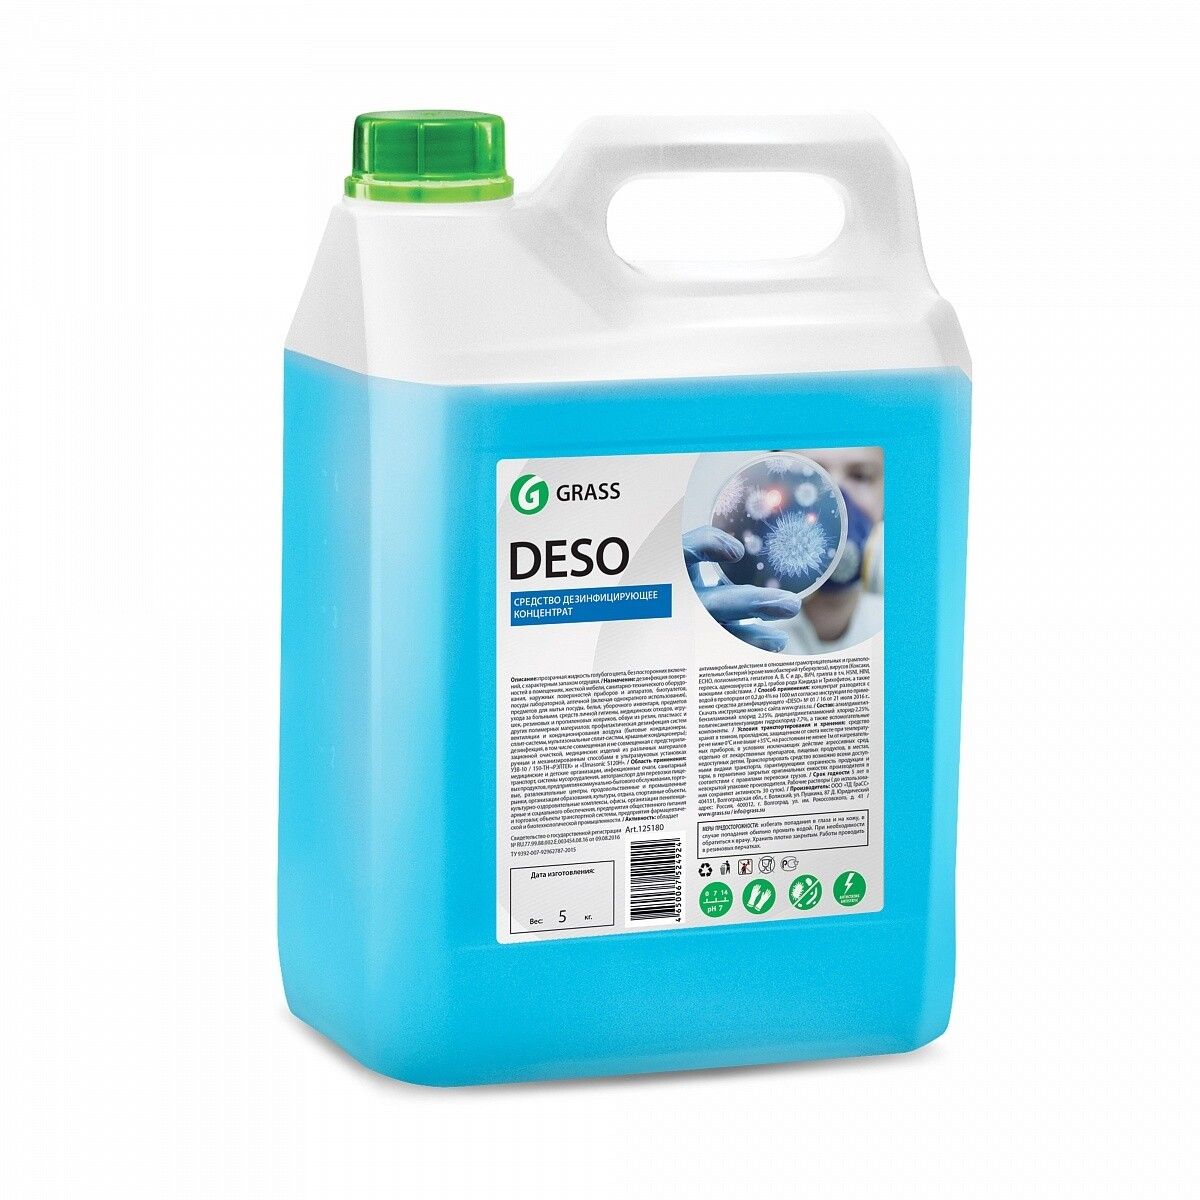 Detergent for disinfection with a wide spectrum of application Deso, 5 l